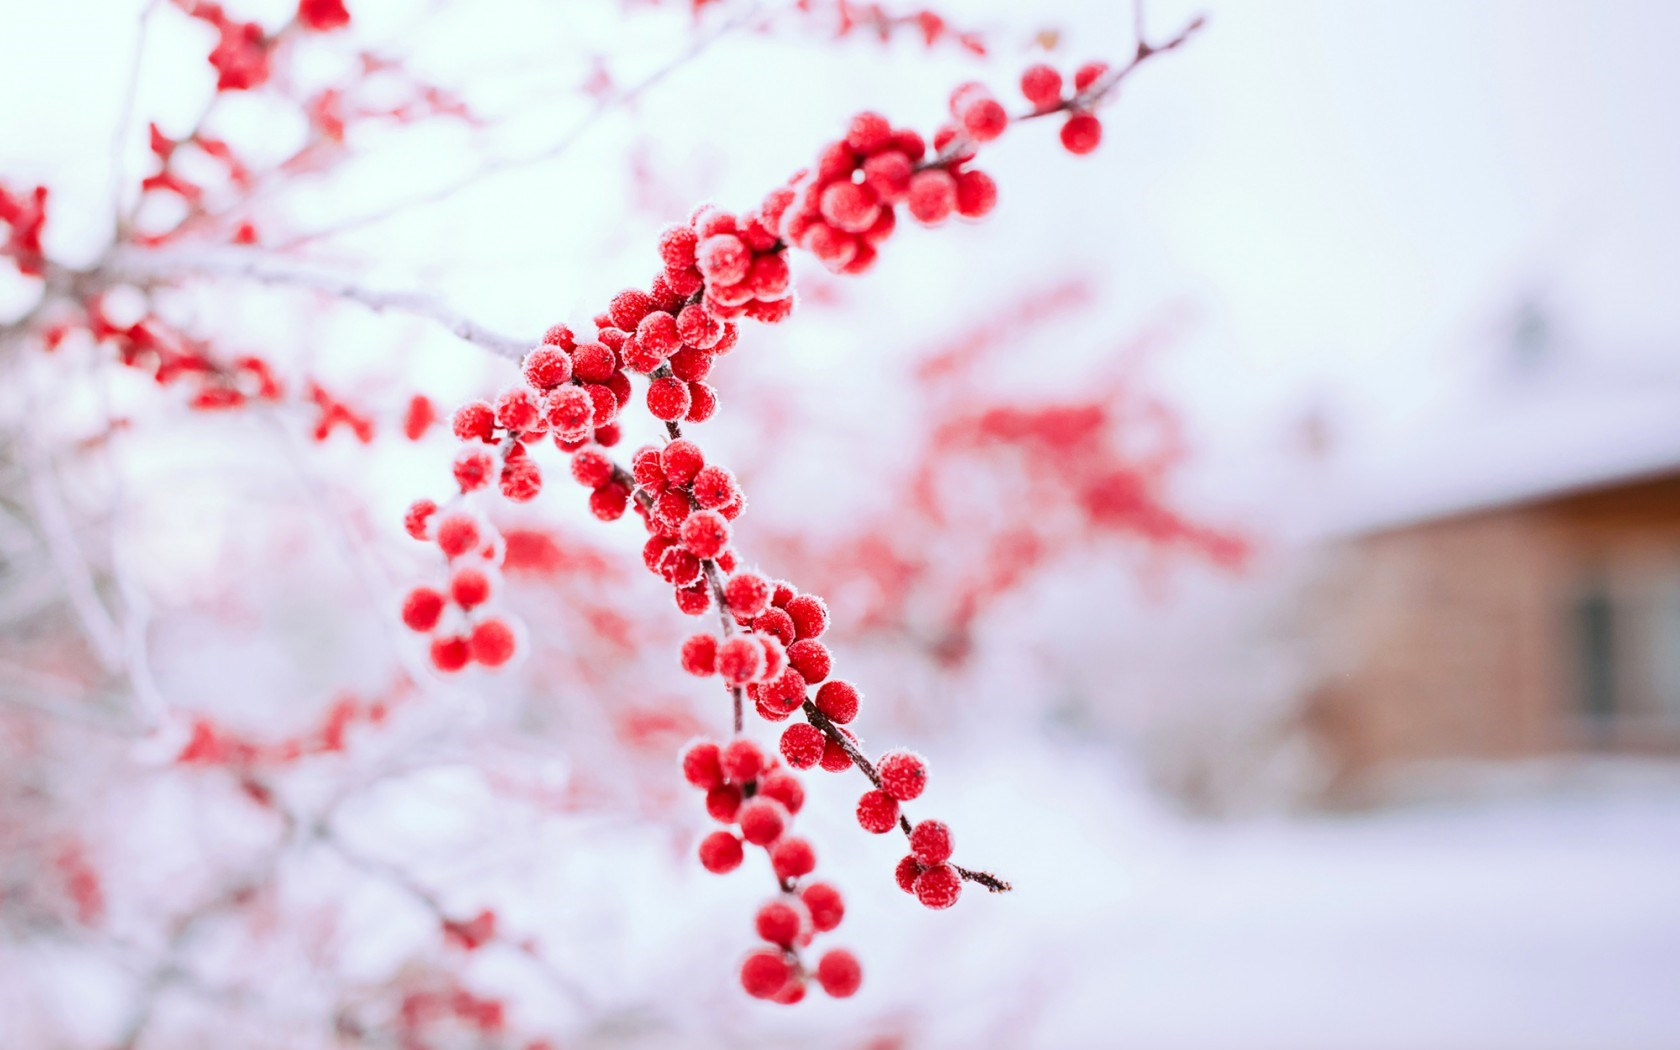 Winter_Berries_Branches_w.jpg